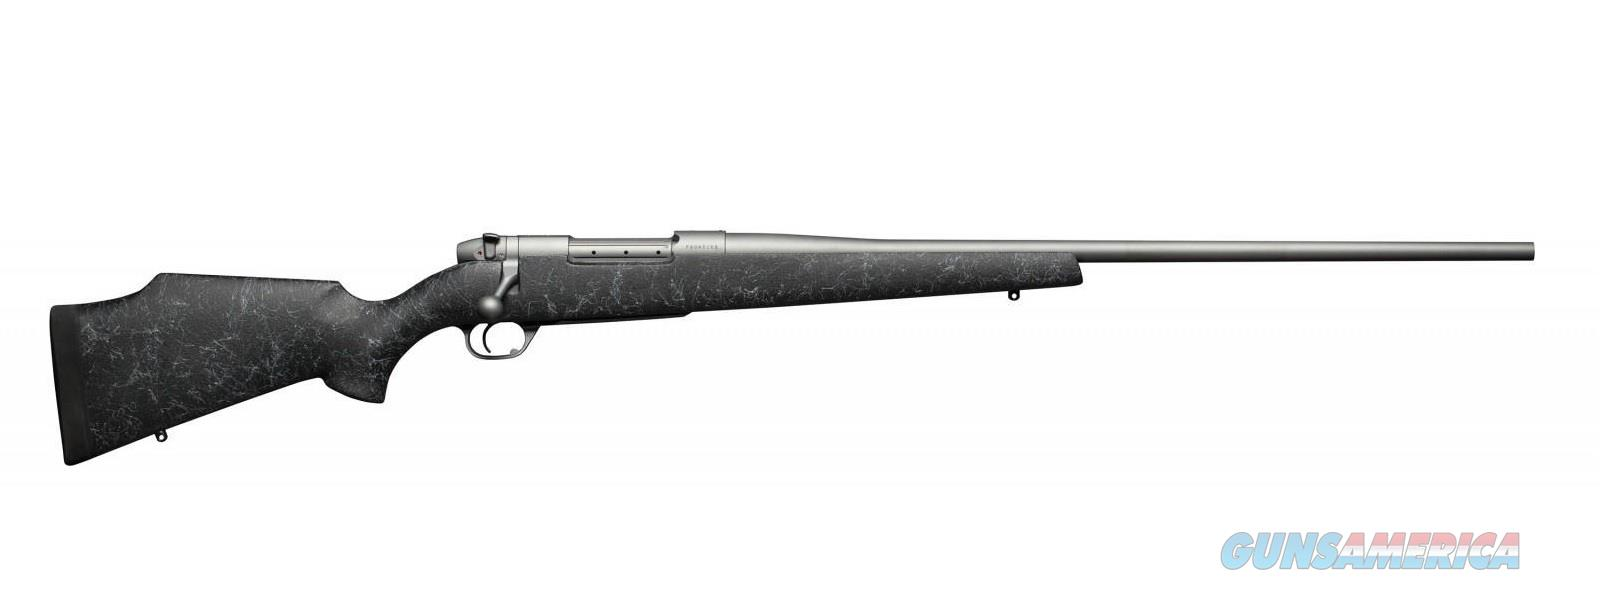 """Weatherby Mark V Weathermark 26"""" 6.5-300 Wby Magnum  Guns > Rifles > Weatherby Rifles > Sporting"""